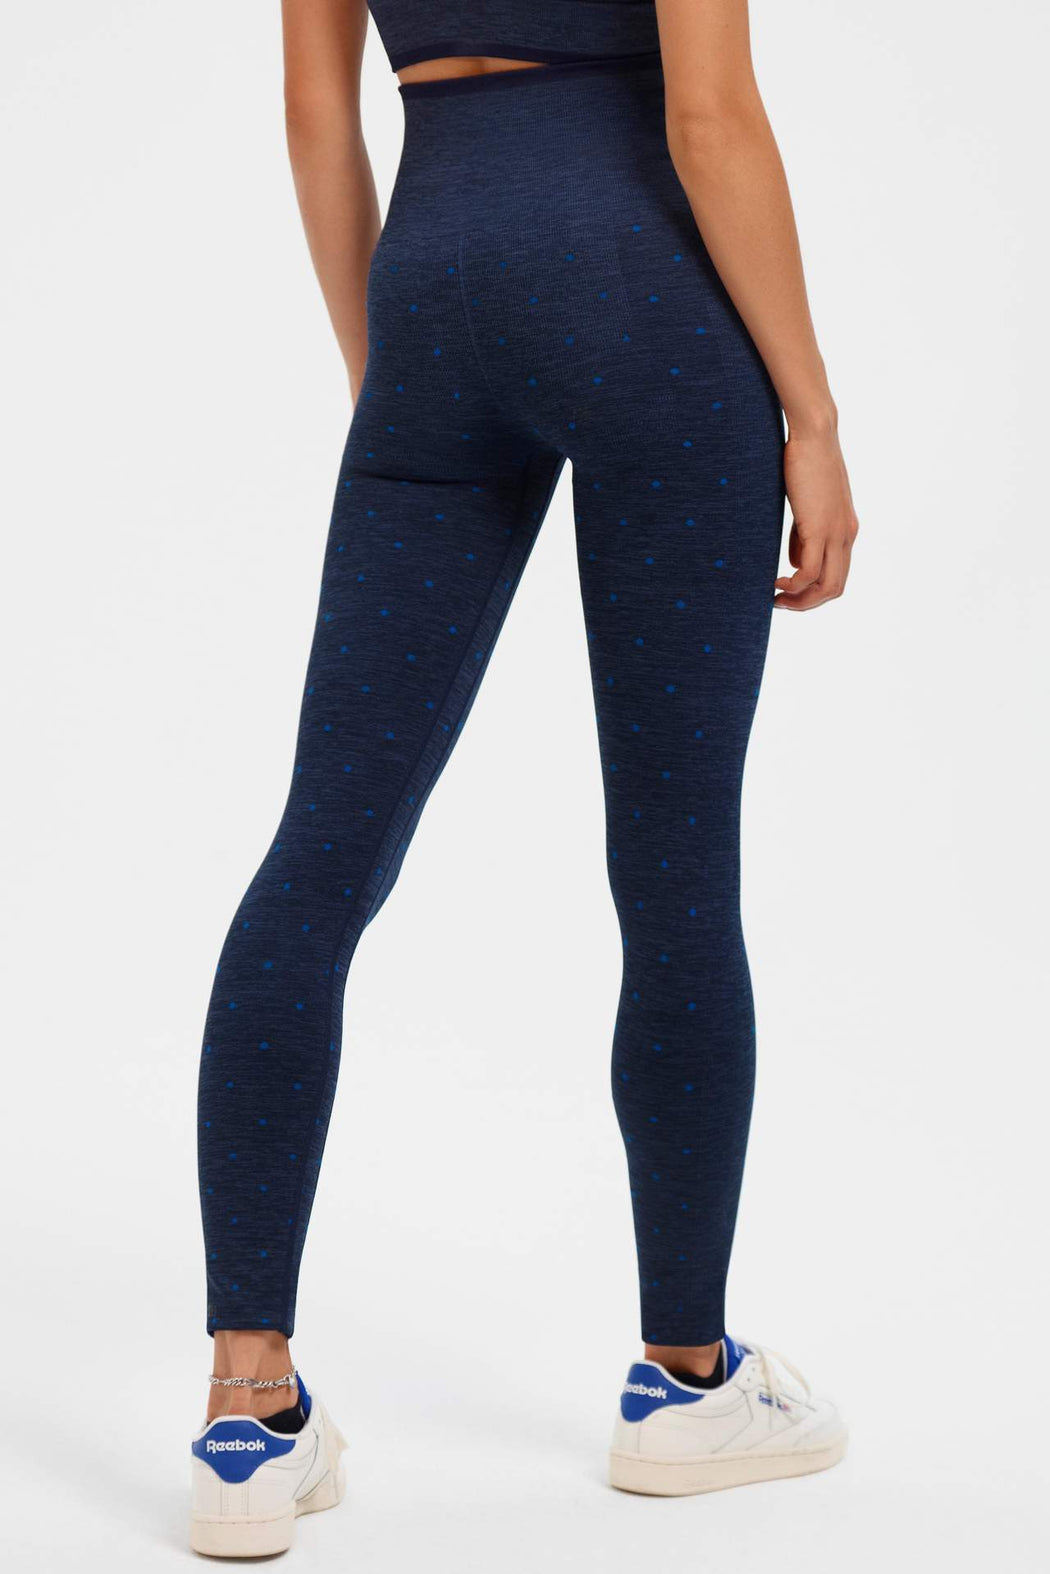 Mila High Waist Seamless Legging 7/8